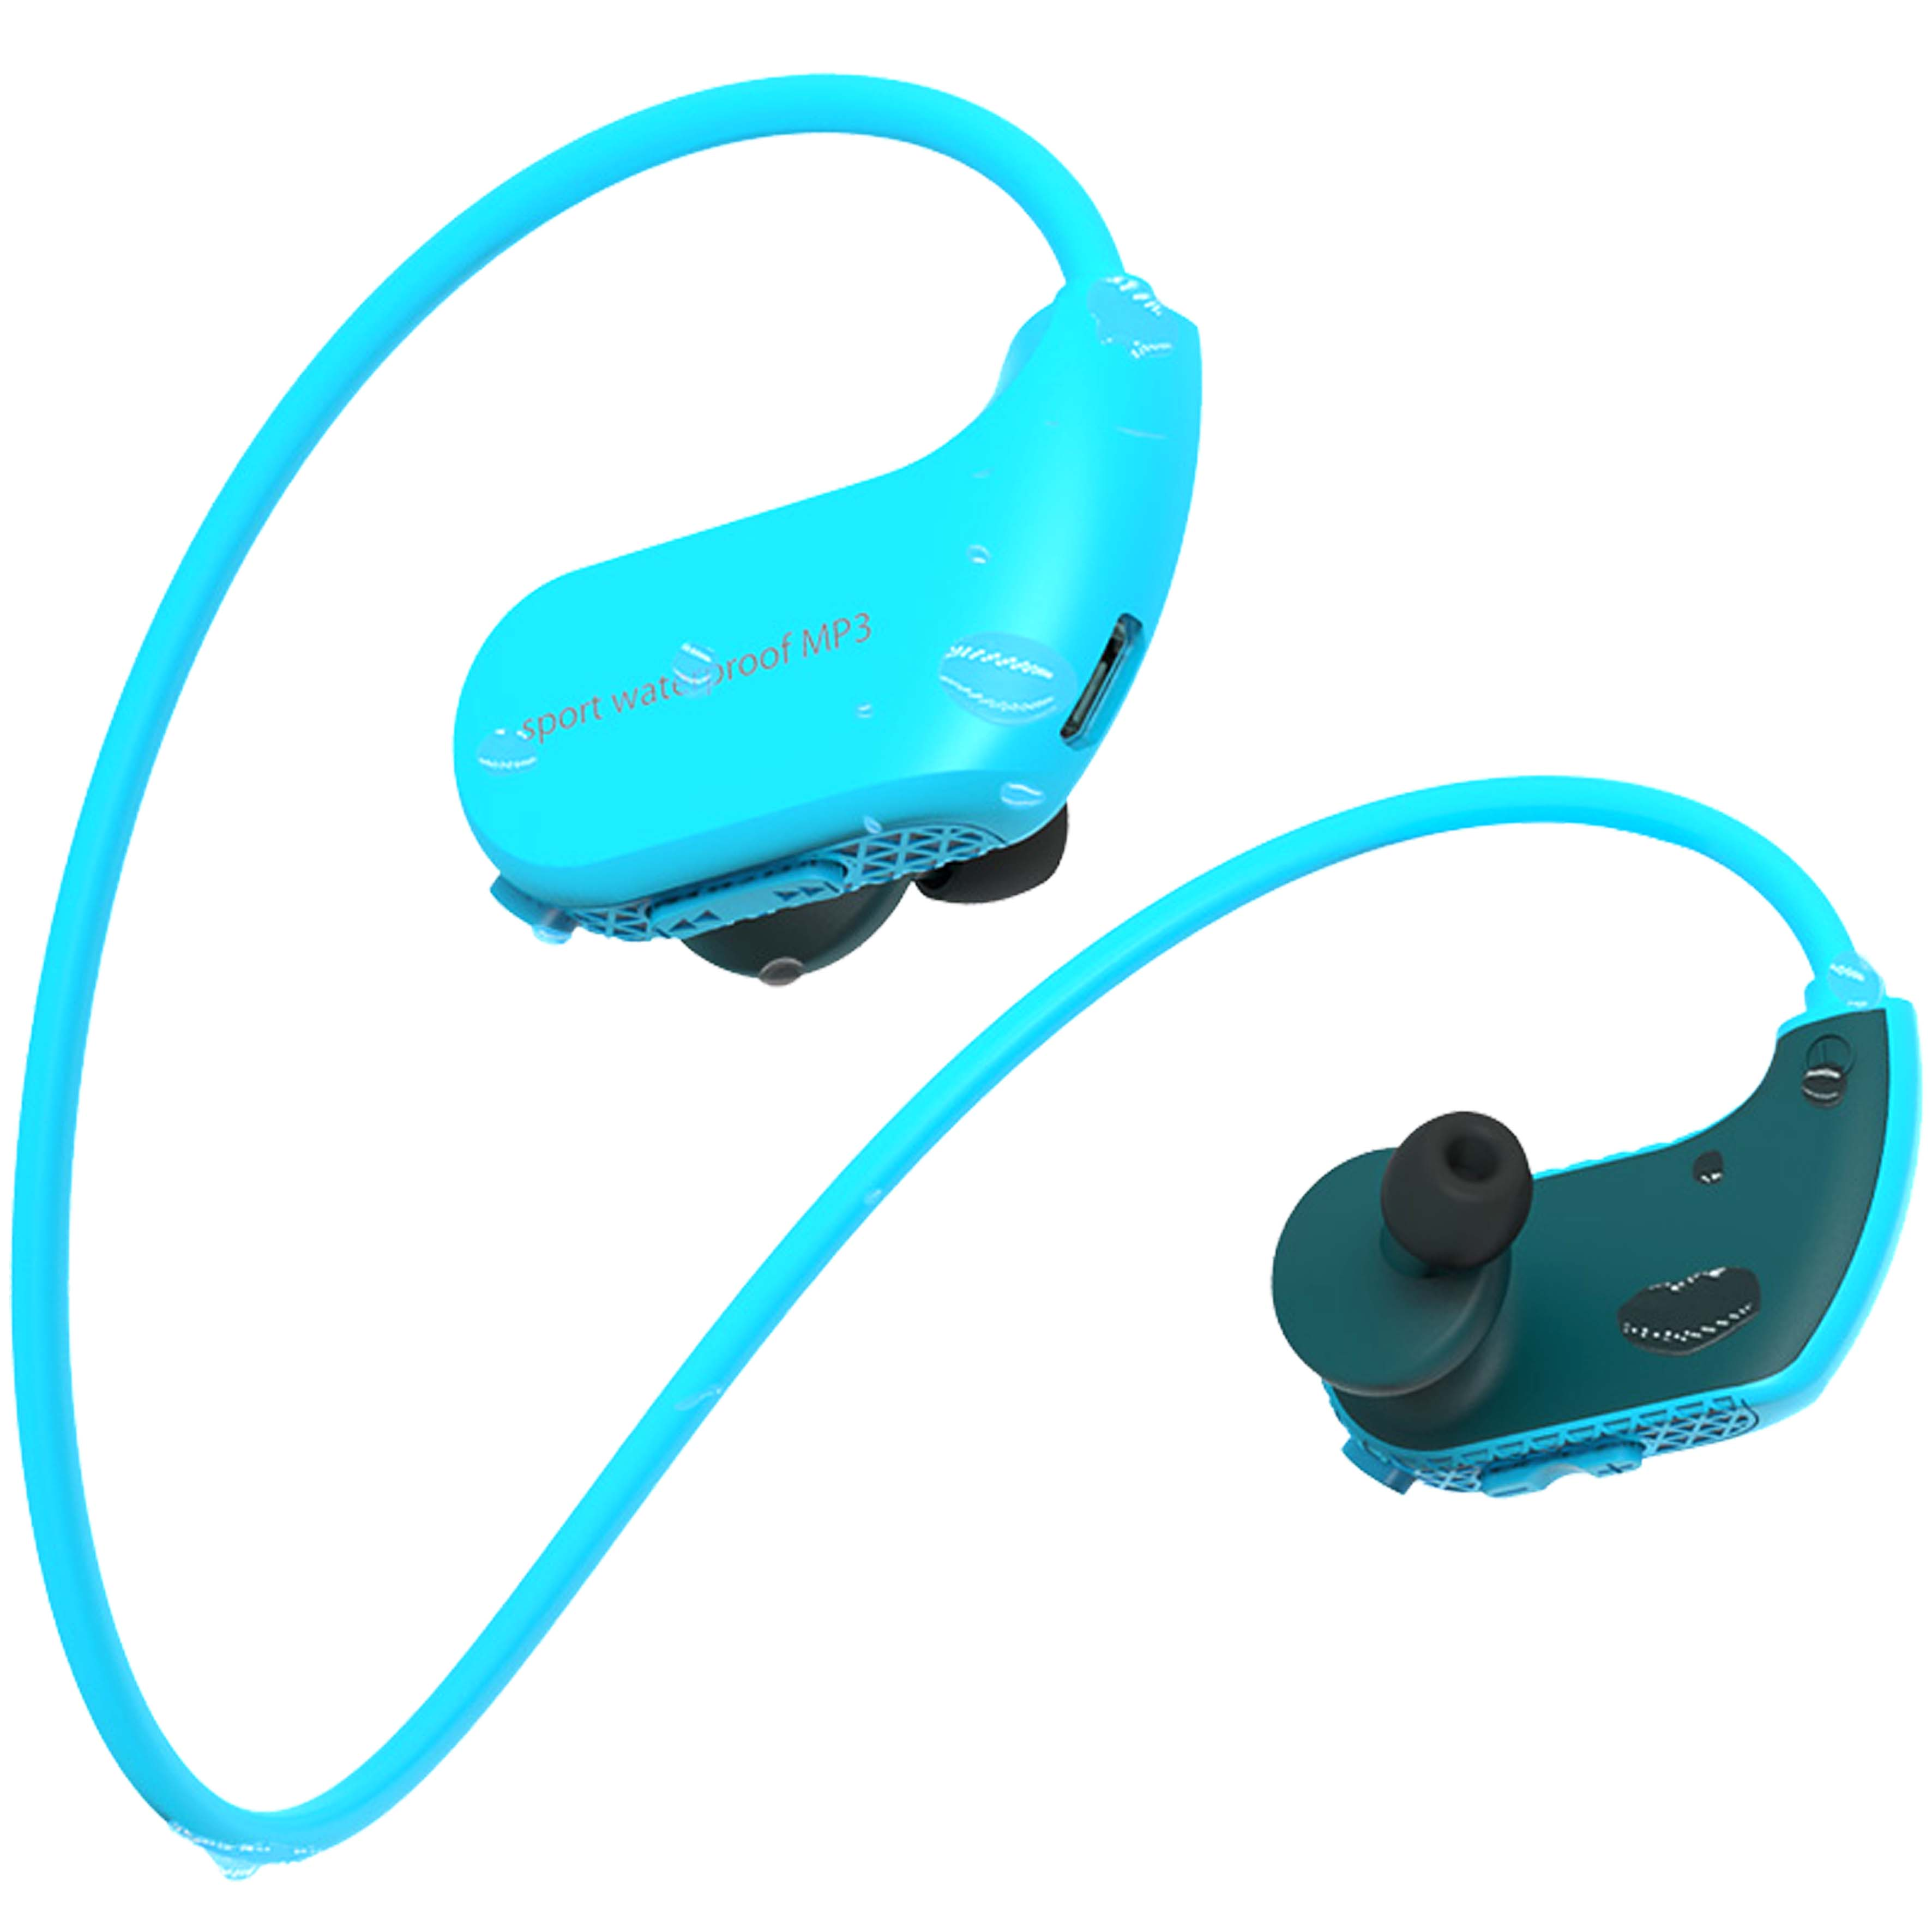 IPX-8 sports waterproof headphones MP3 <strong>player</strong> for swimming / diving / surfing / rowing / running / skiing / riding